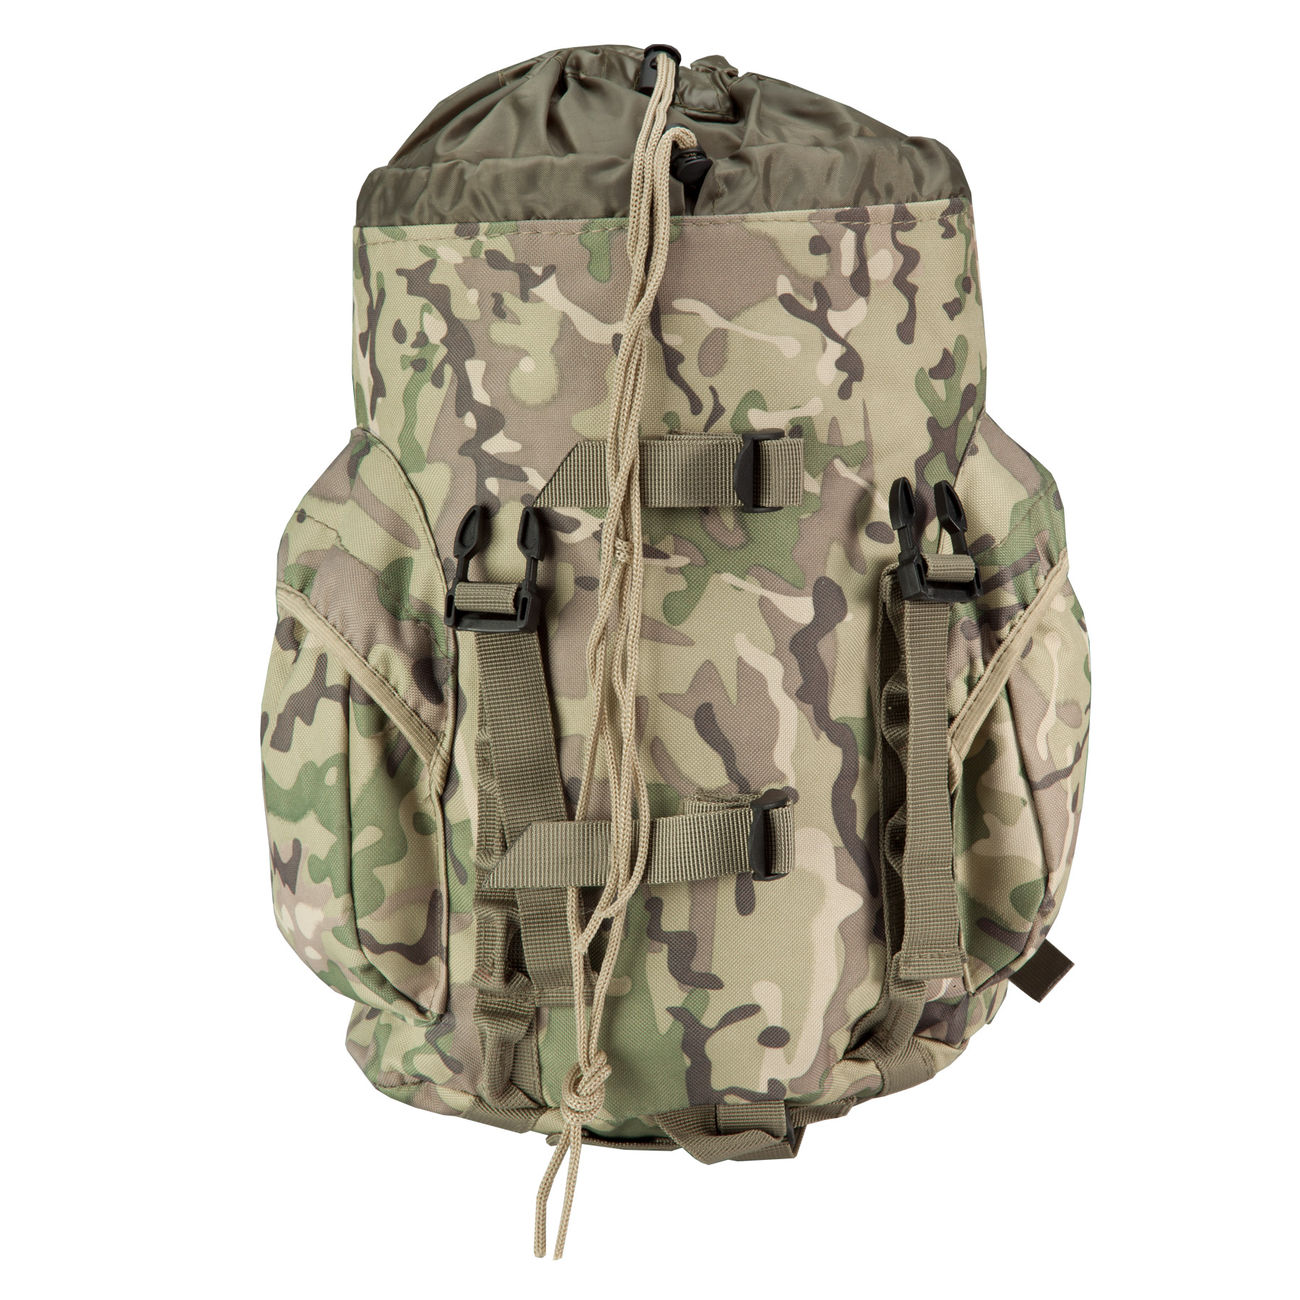 MFH Rucksack Recon I operation camo 3